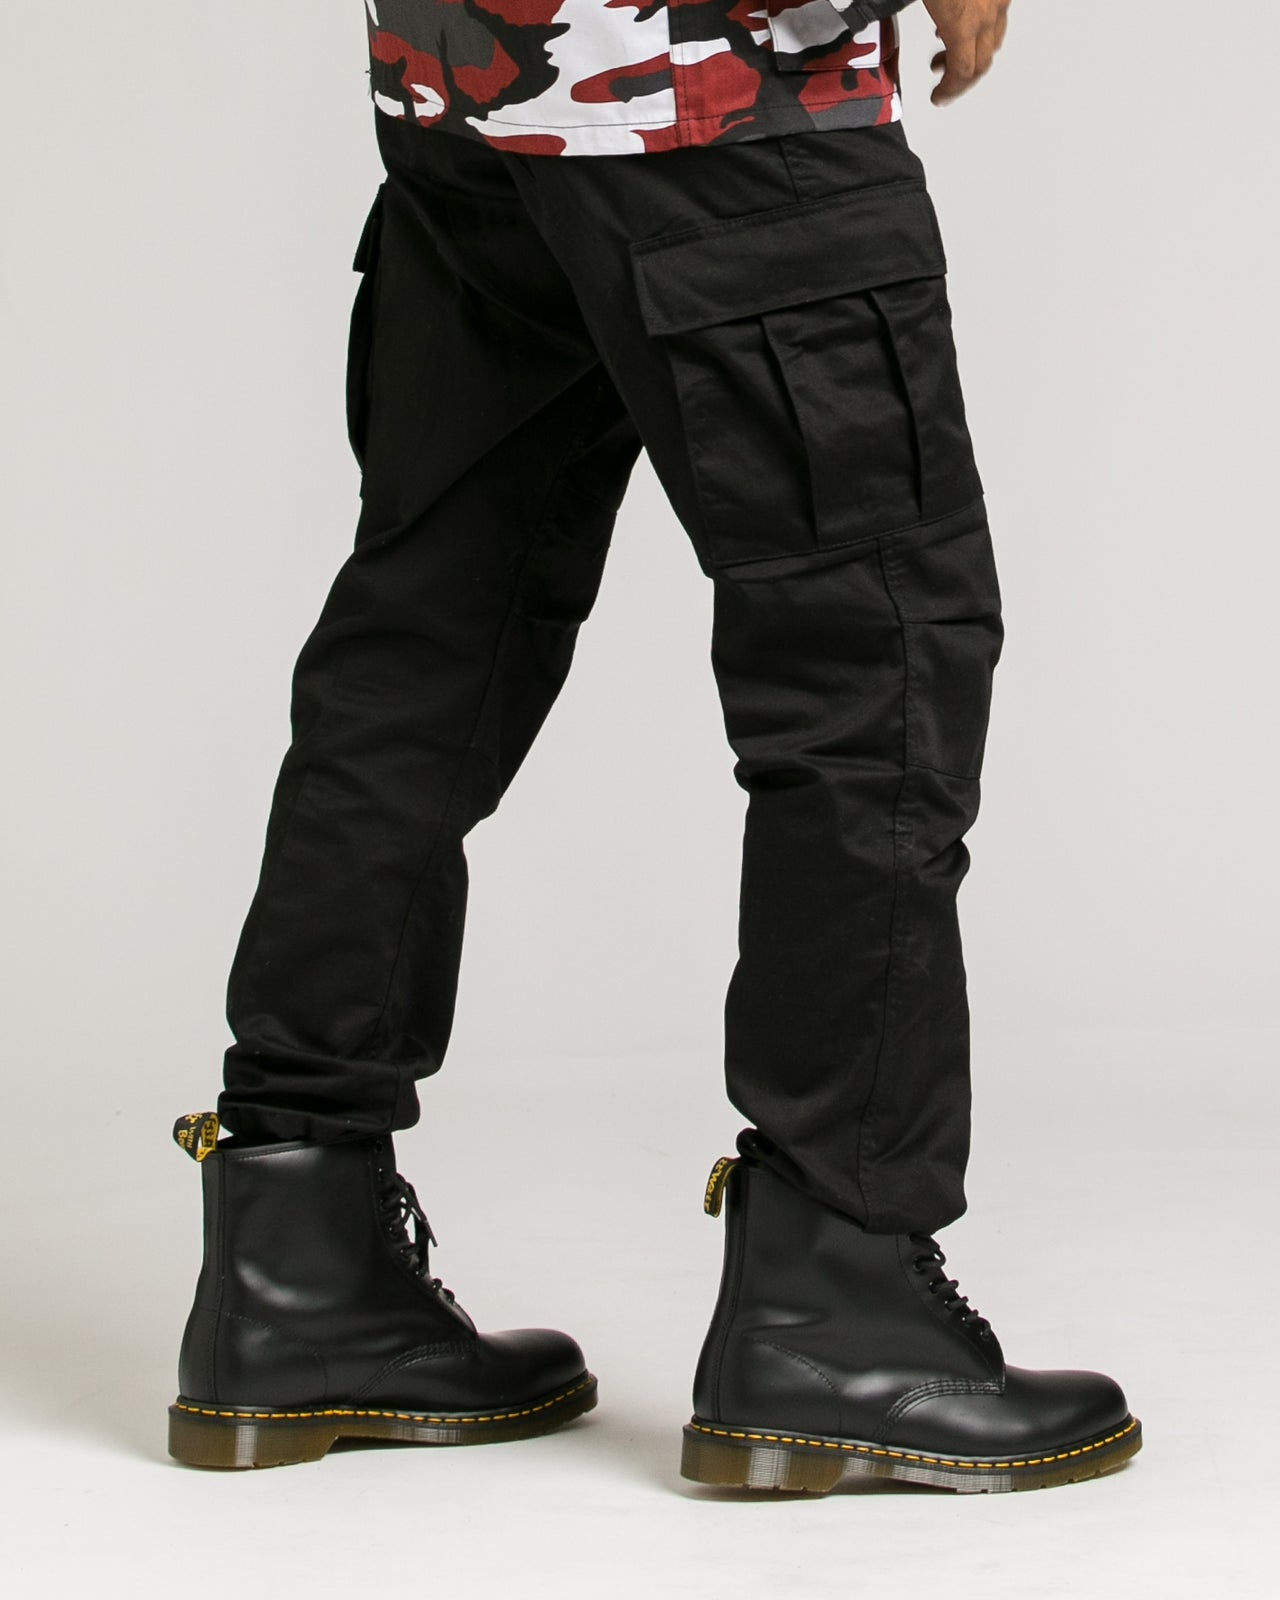 B.D.U. Pants - Color: Black | Black